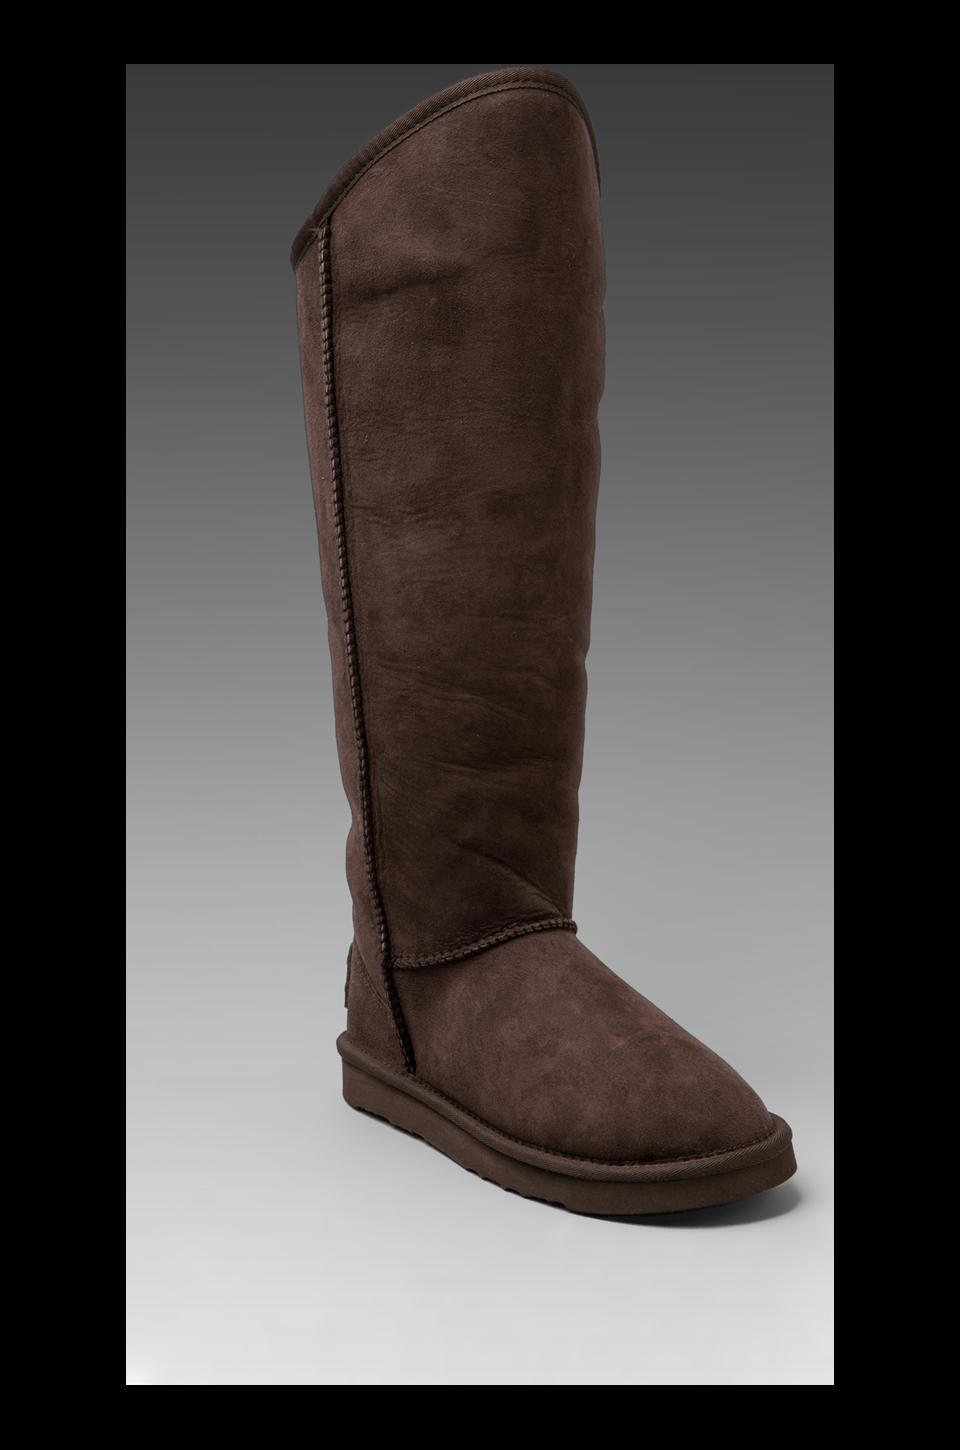 Australia Luxe Collective Cosy Extra Tall with Sheepskin in Beva